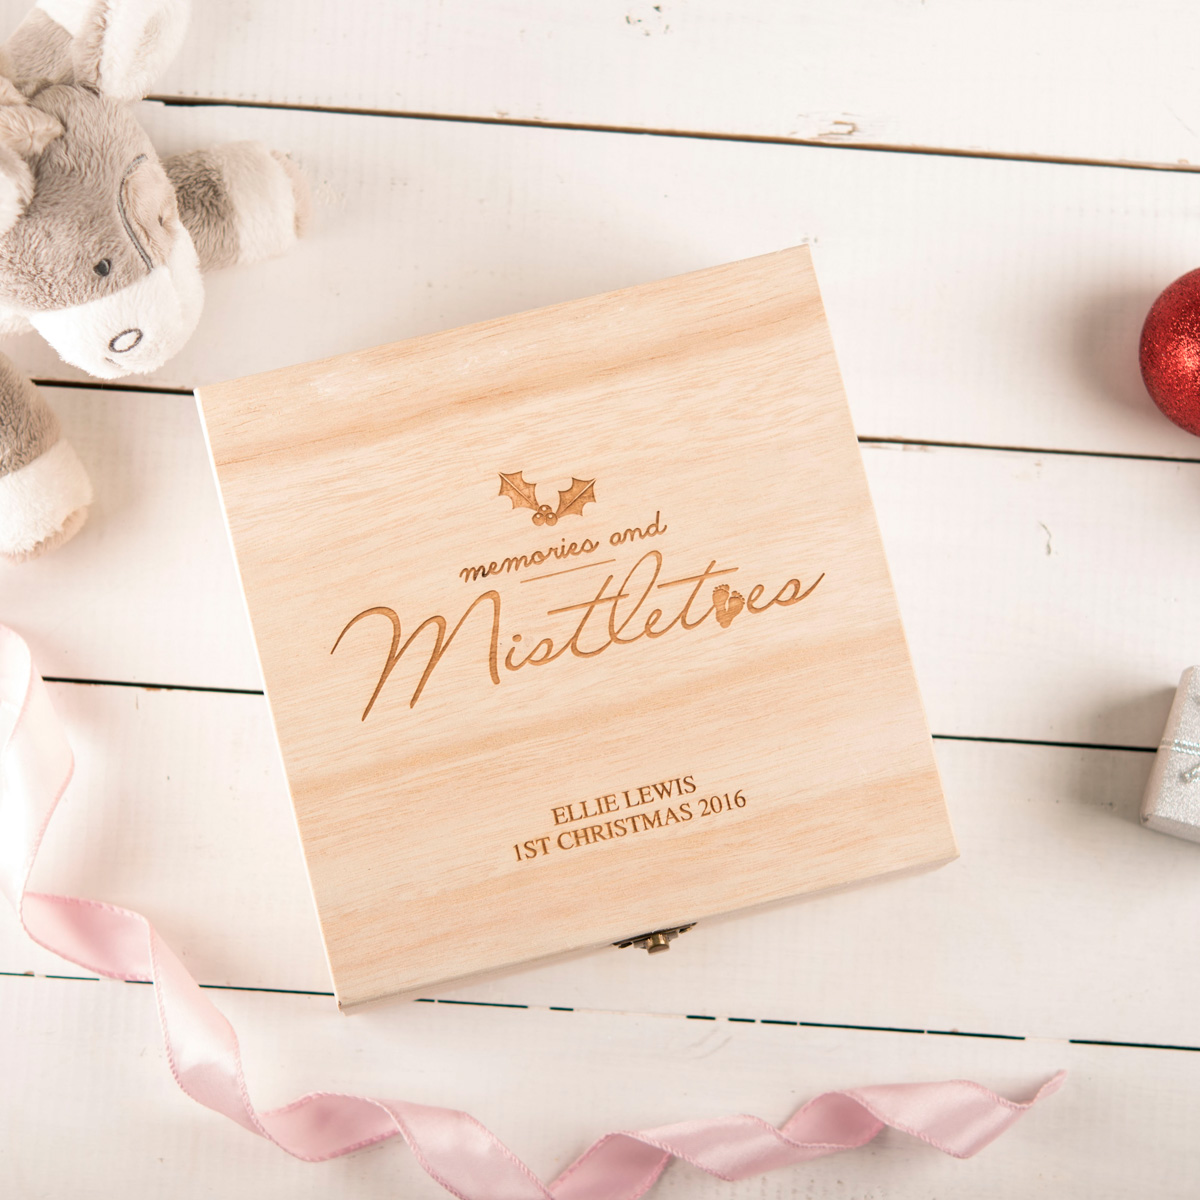 Personalised Storage Box - Memories And Mistletoes